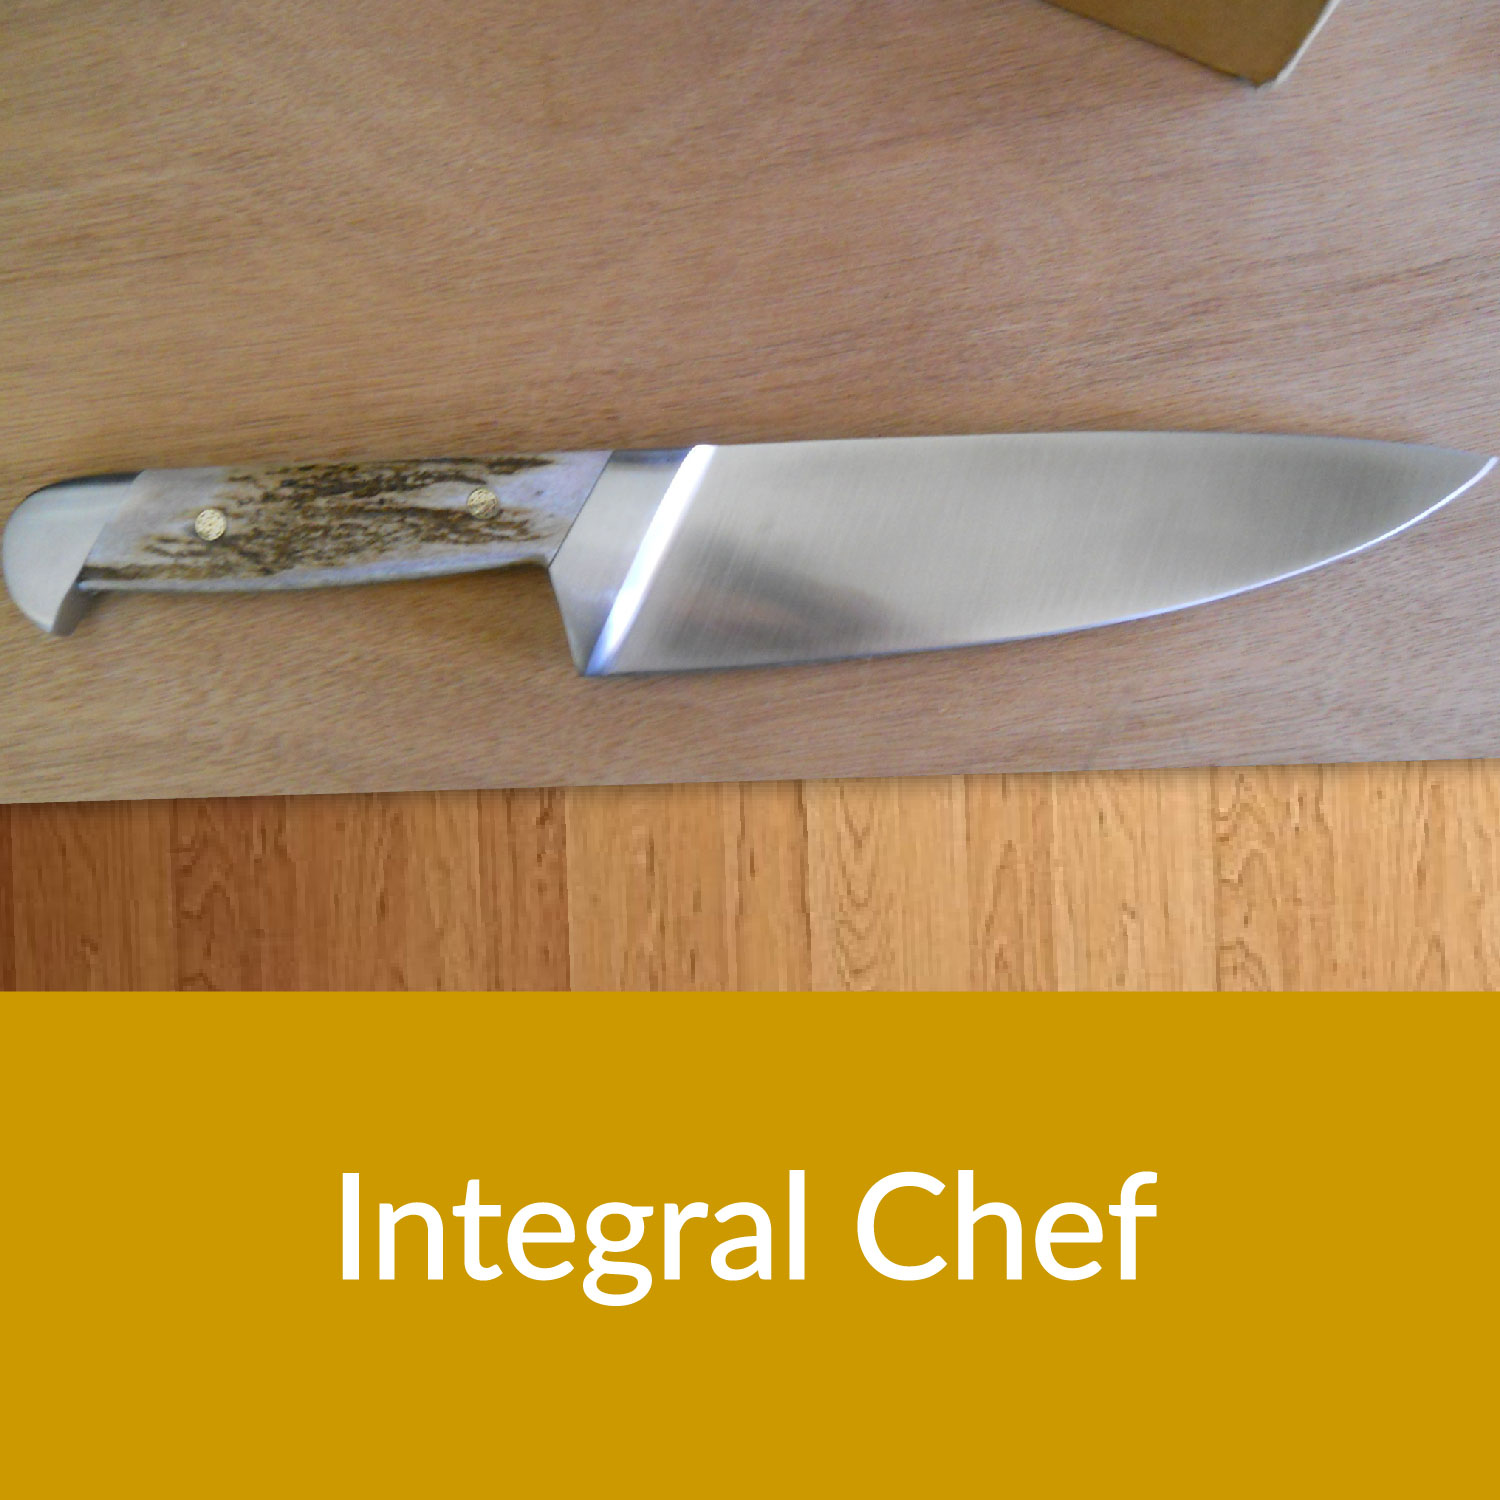 The Integral Chef